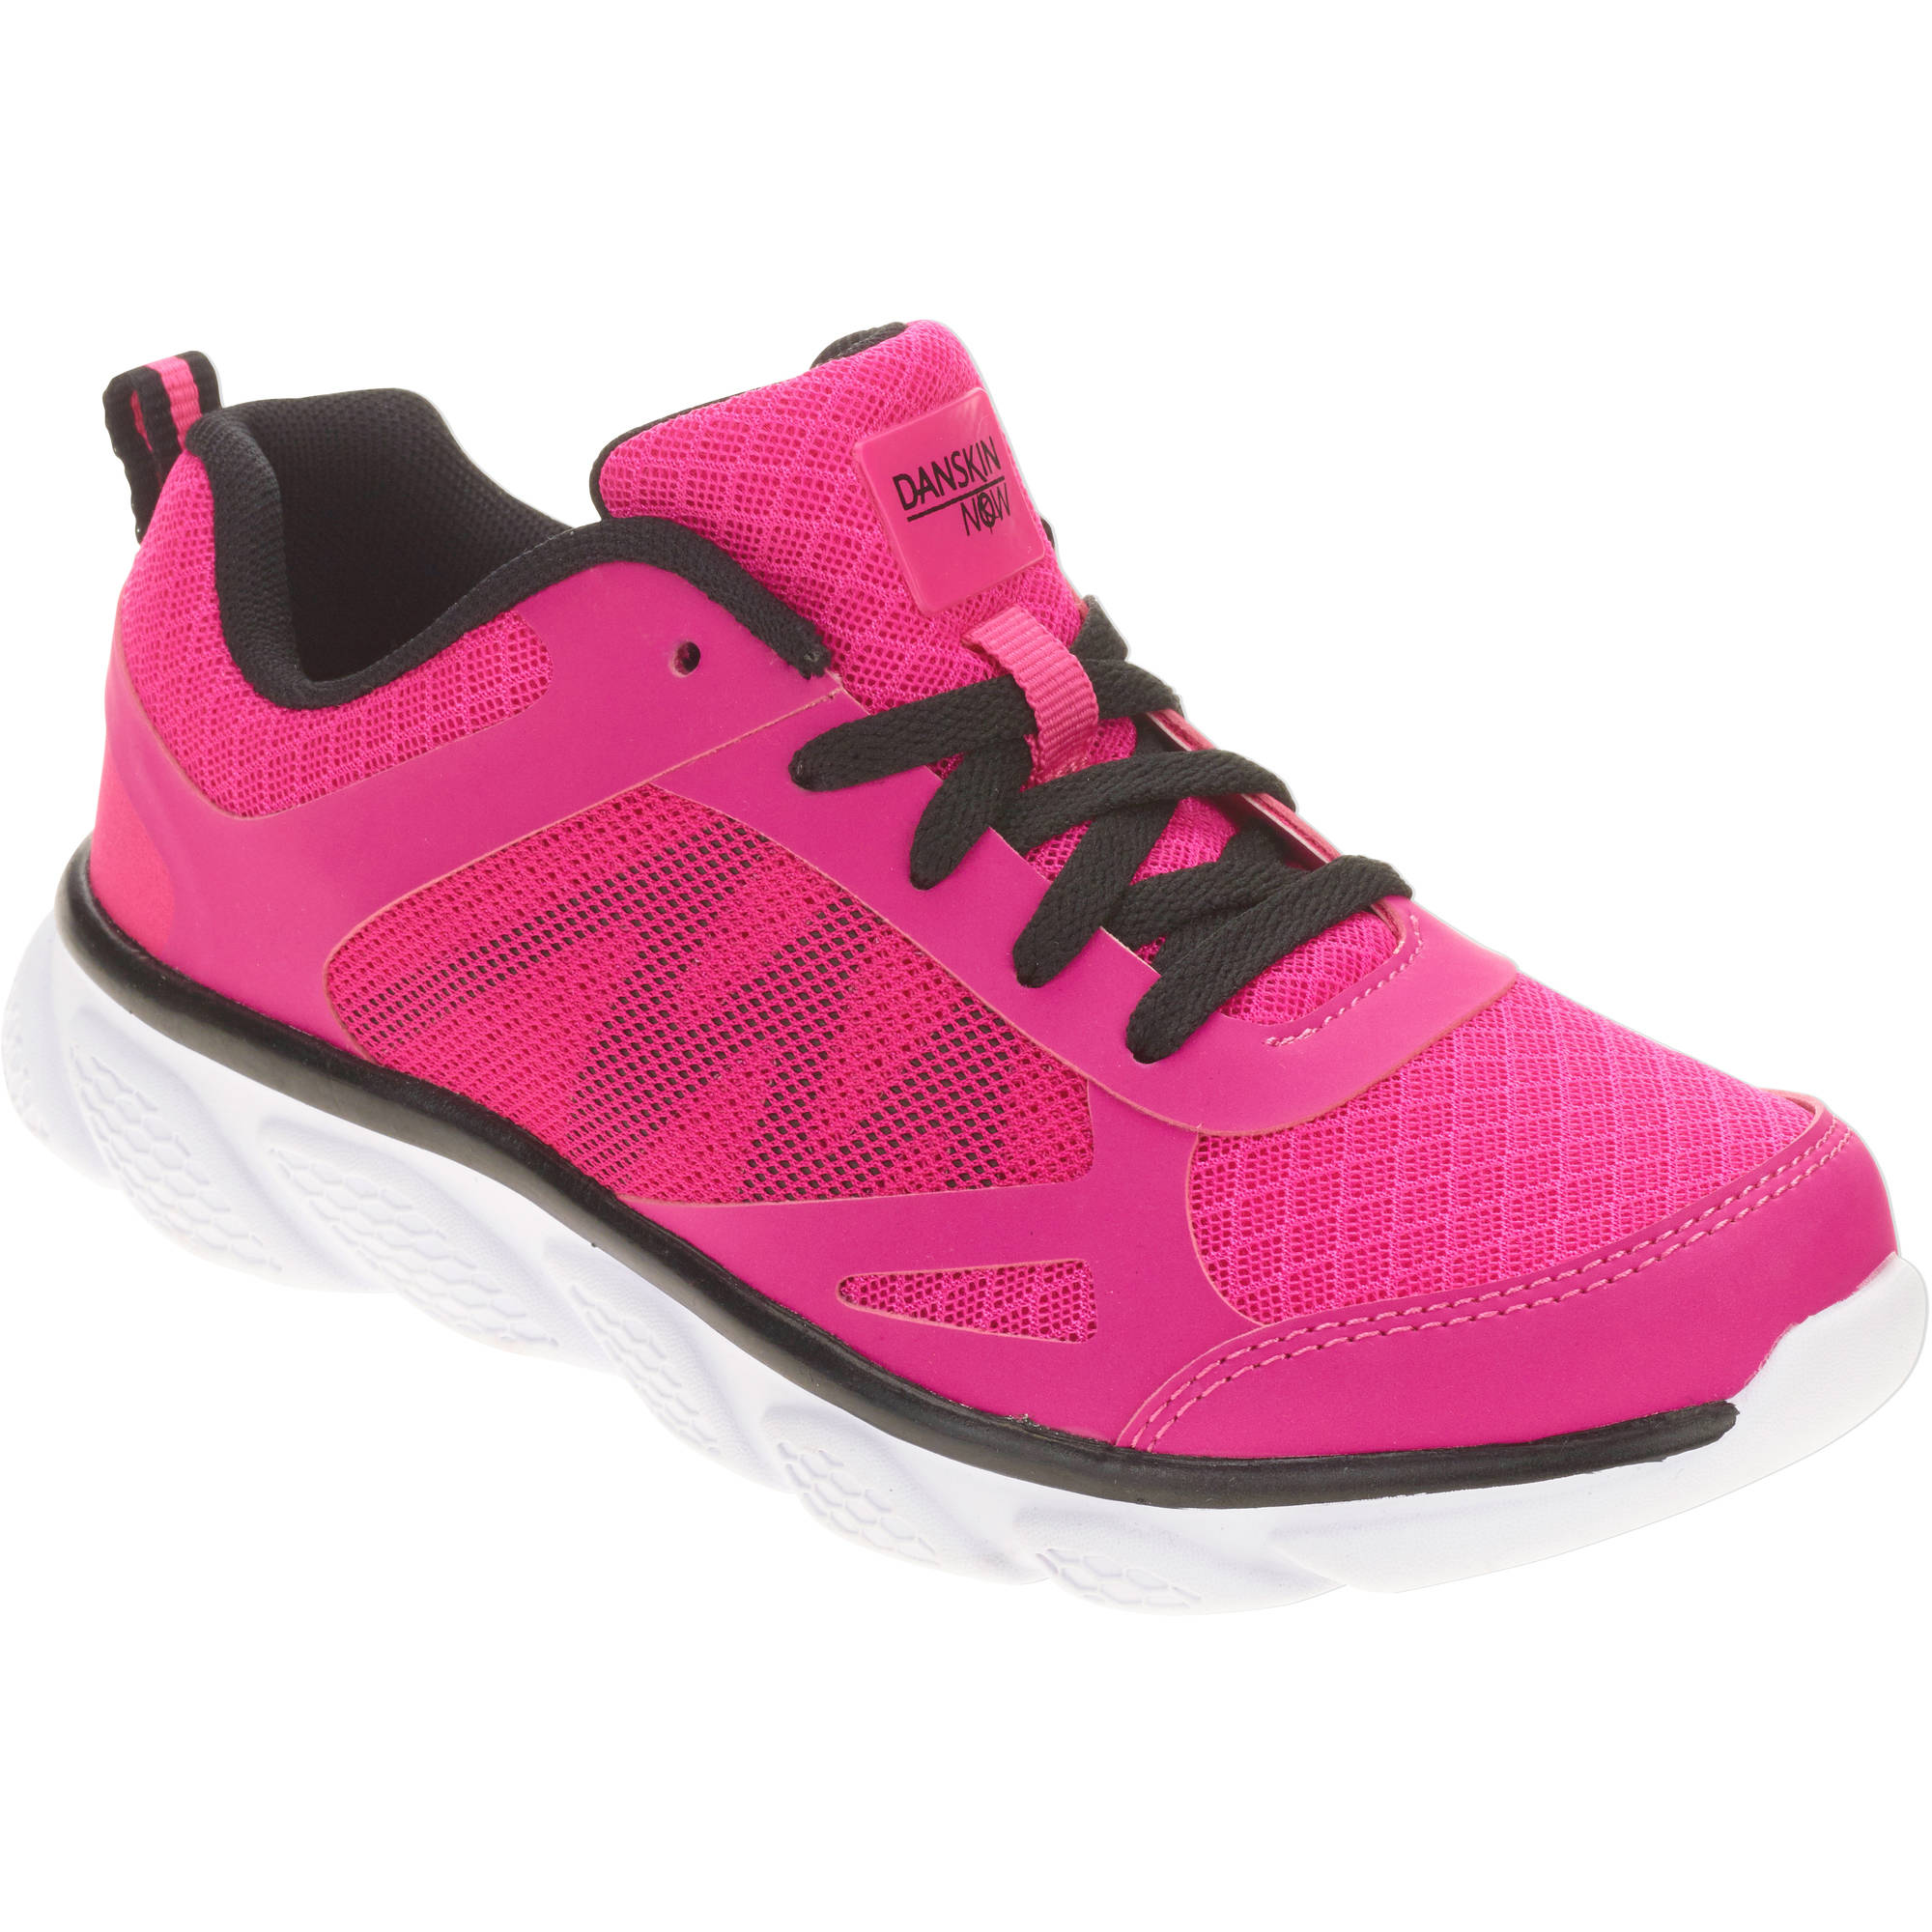 Danskin Now Girls Athletic Lightweight Running Shoe